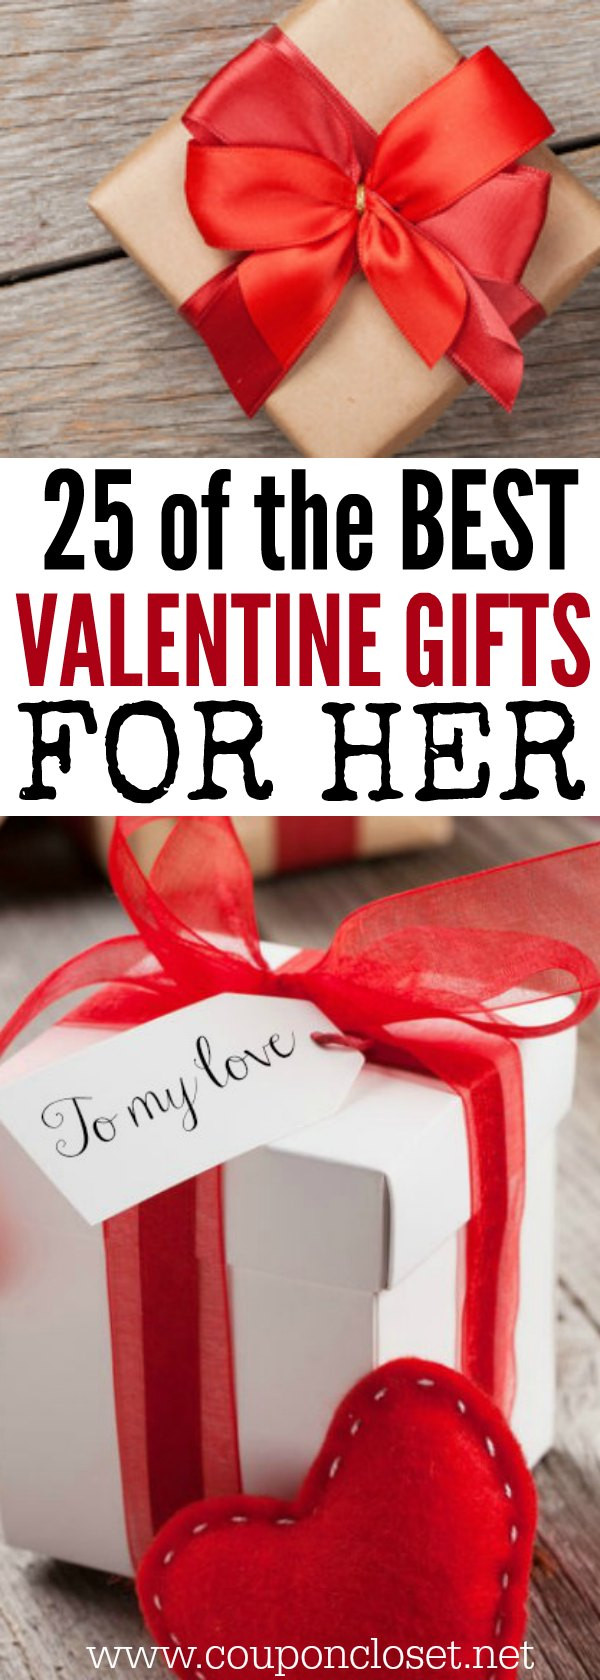 Best Valentines Gift Ideas  25 Valentine s Day ts for Her on a bud  Coupon Closet